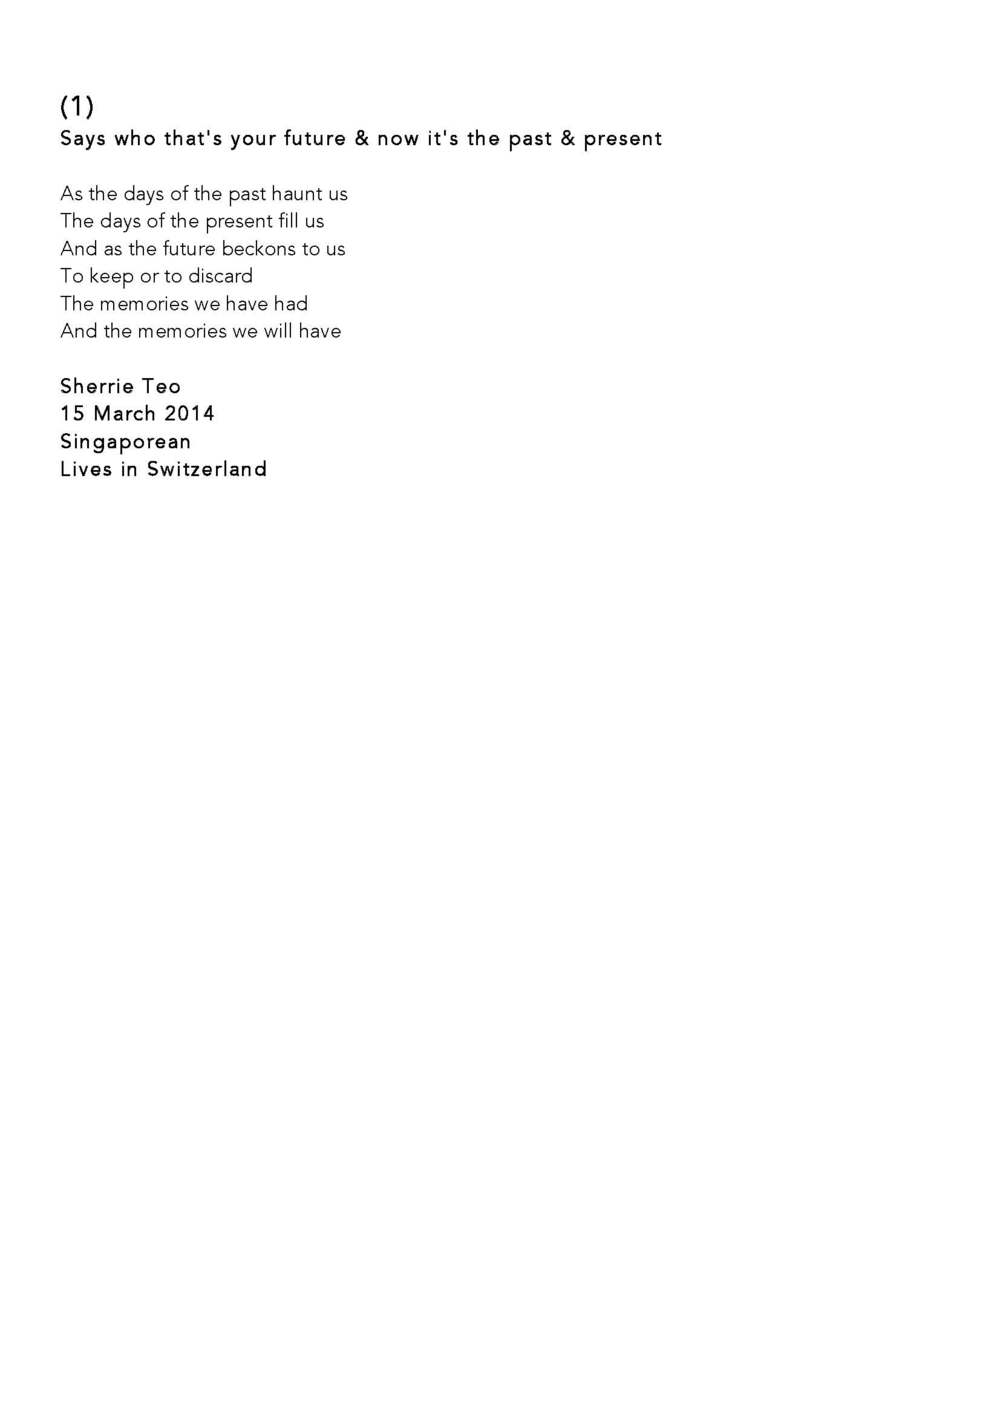 Poetry Collection - Everyone can Poetry_March 2014_Page_1.jpg